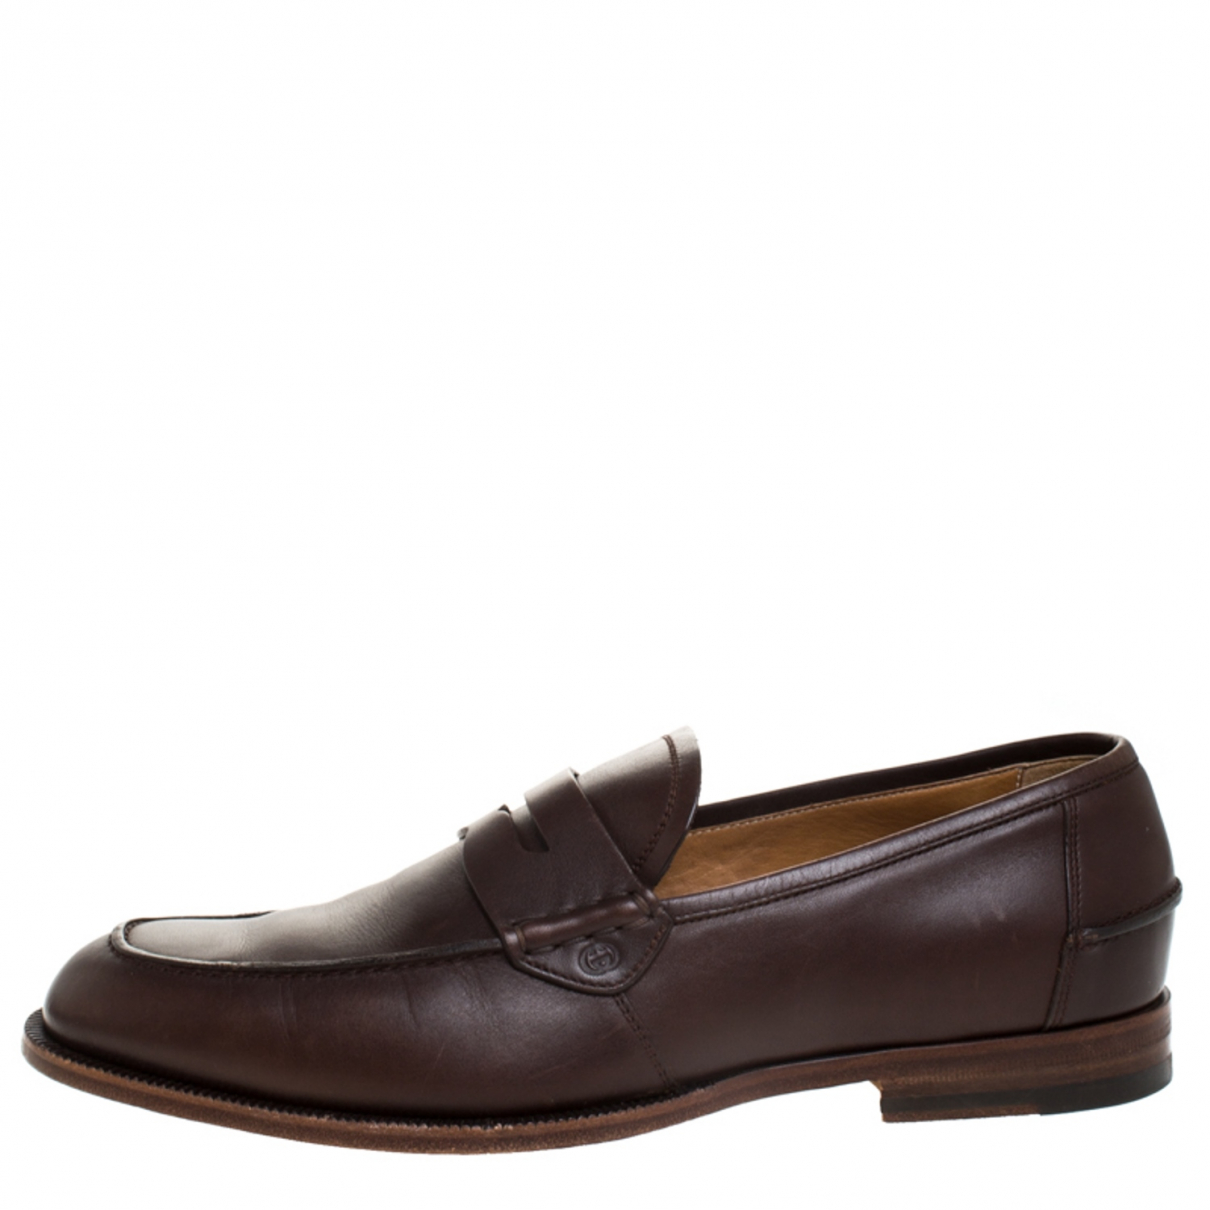 Gucci \N Brown Leather Flats for Men 9 US